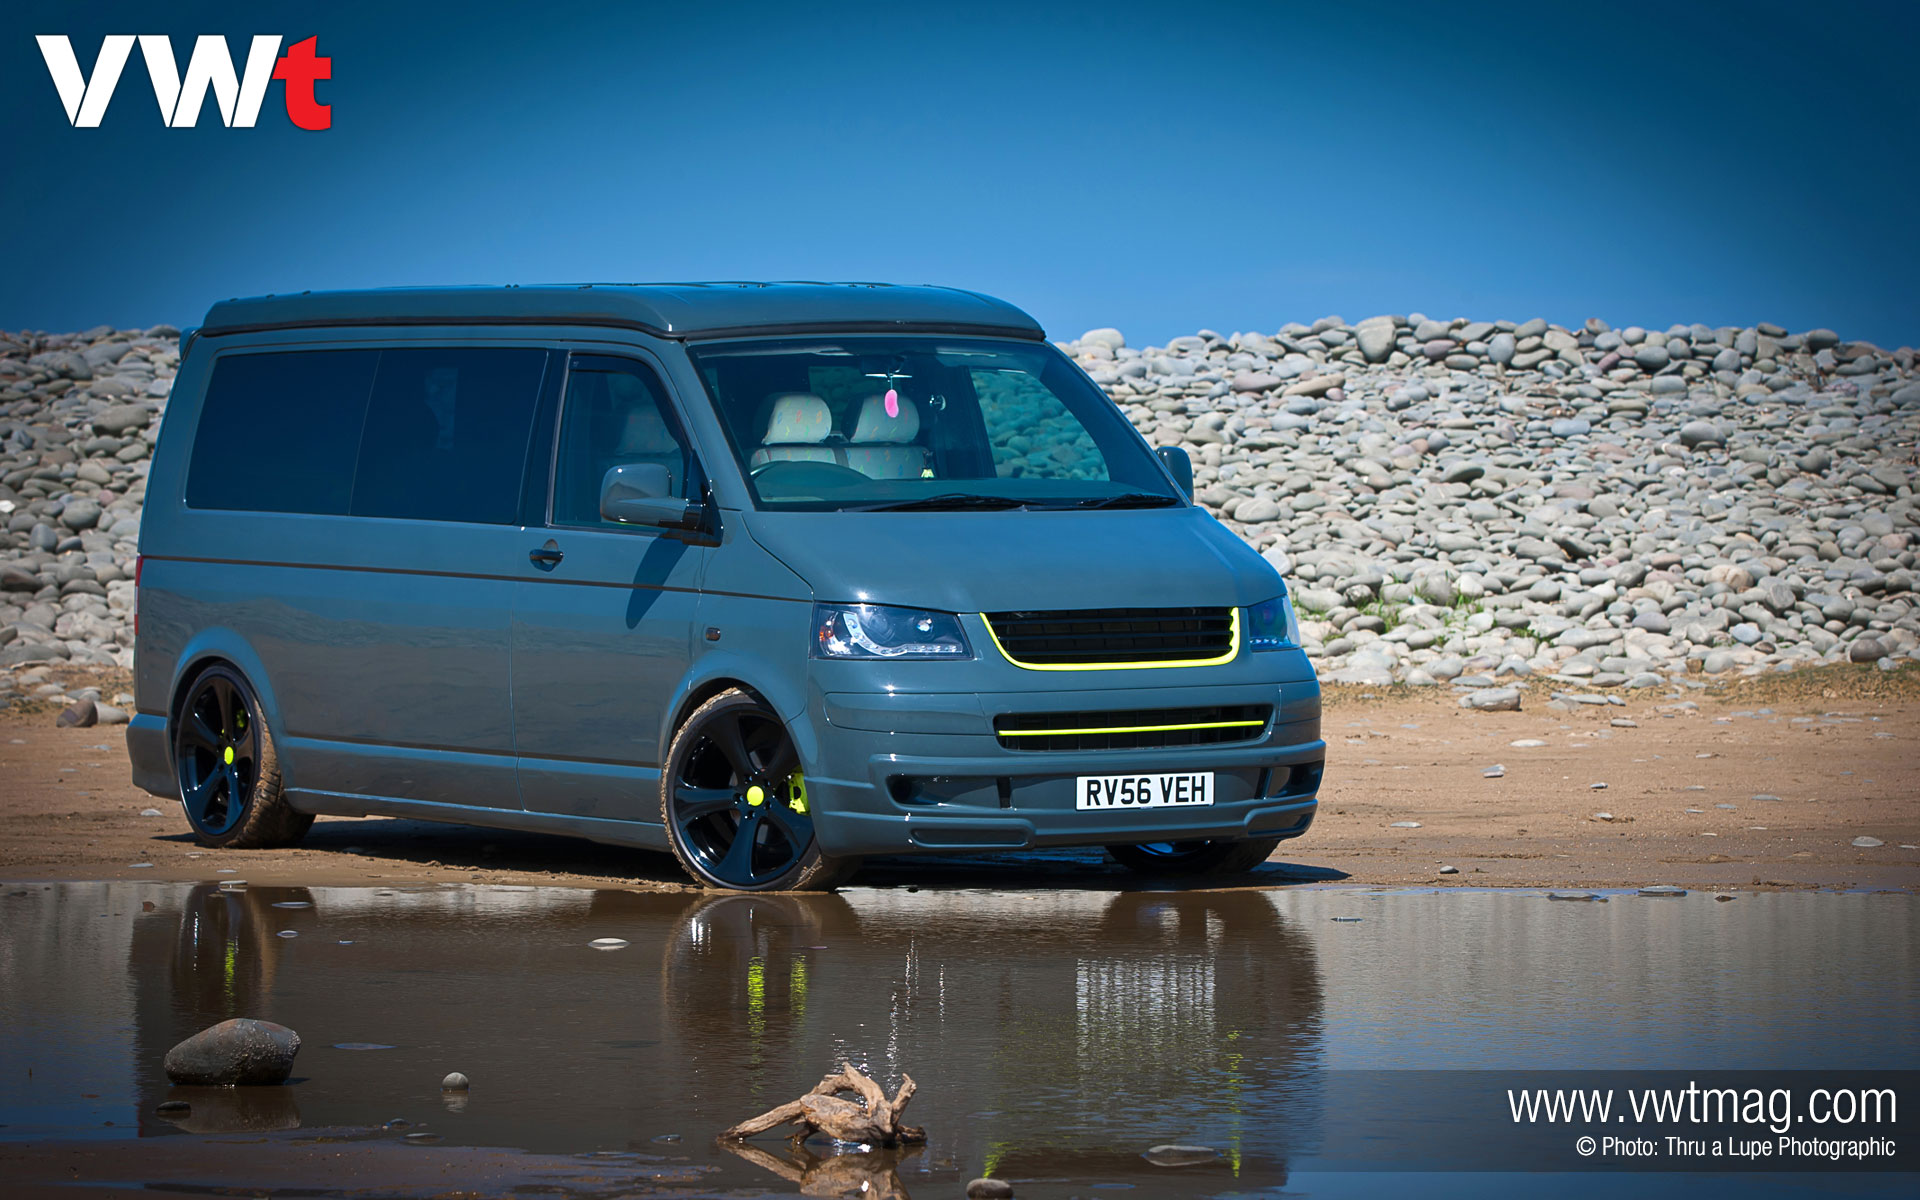 2006 Lwb T5 Campervan Desktop Wallpaper Vwt Magazine HD Wallpapers Download Free Images Wallpaper [1000image.com]